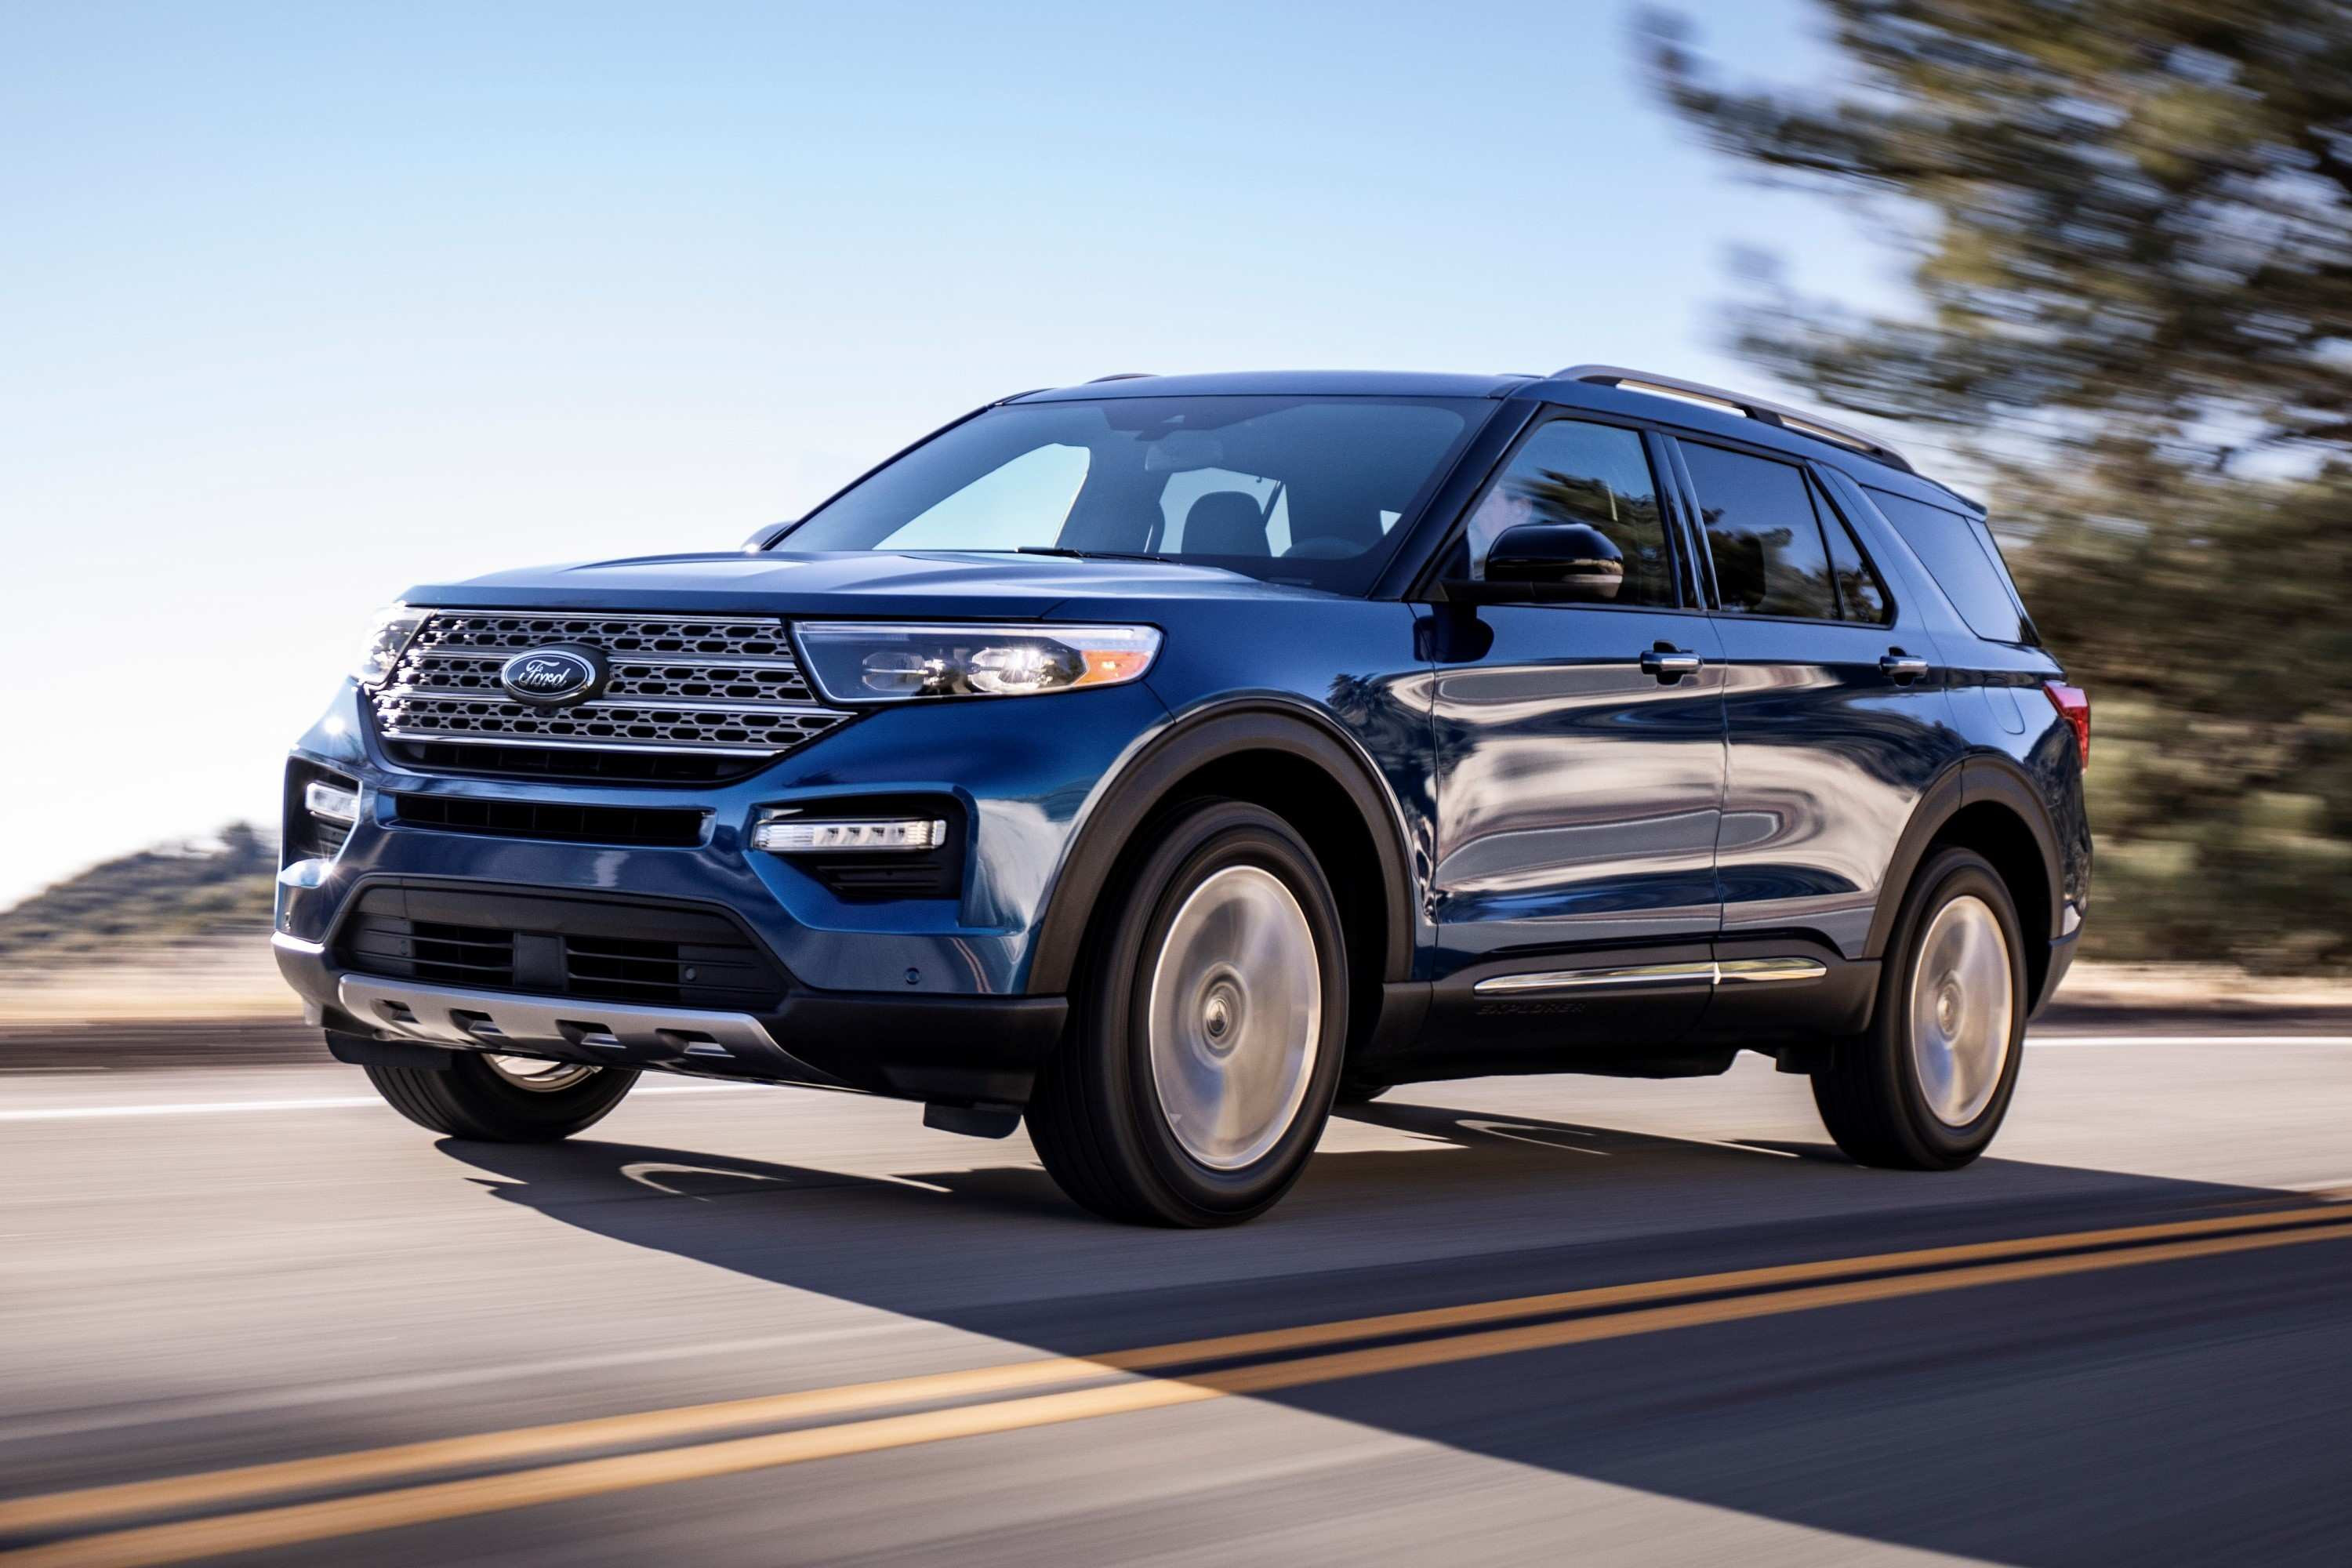 59 Gallery of Ford Unveils The New 2020 Explorer Specs and Review with Ford Unveils The New 2020 Explorer